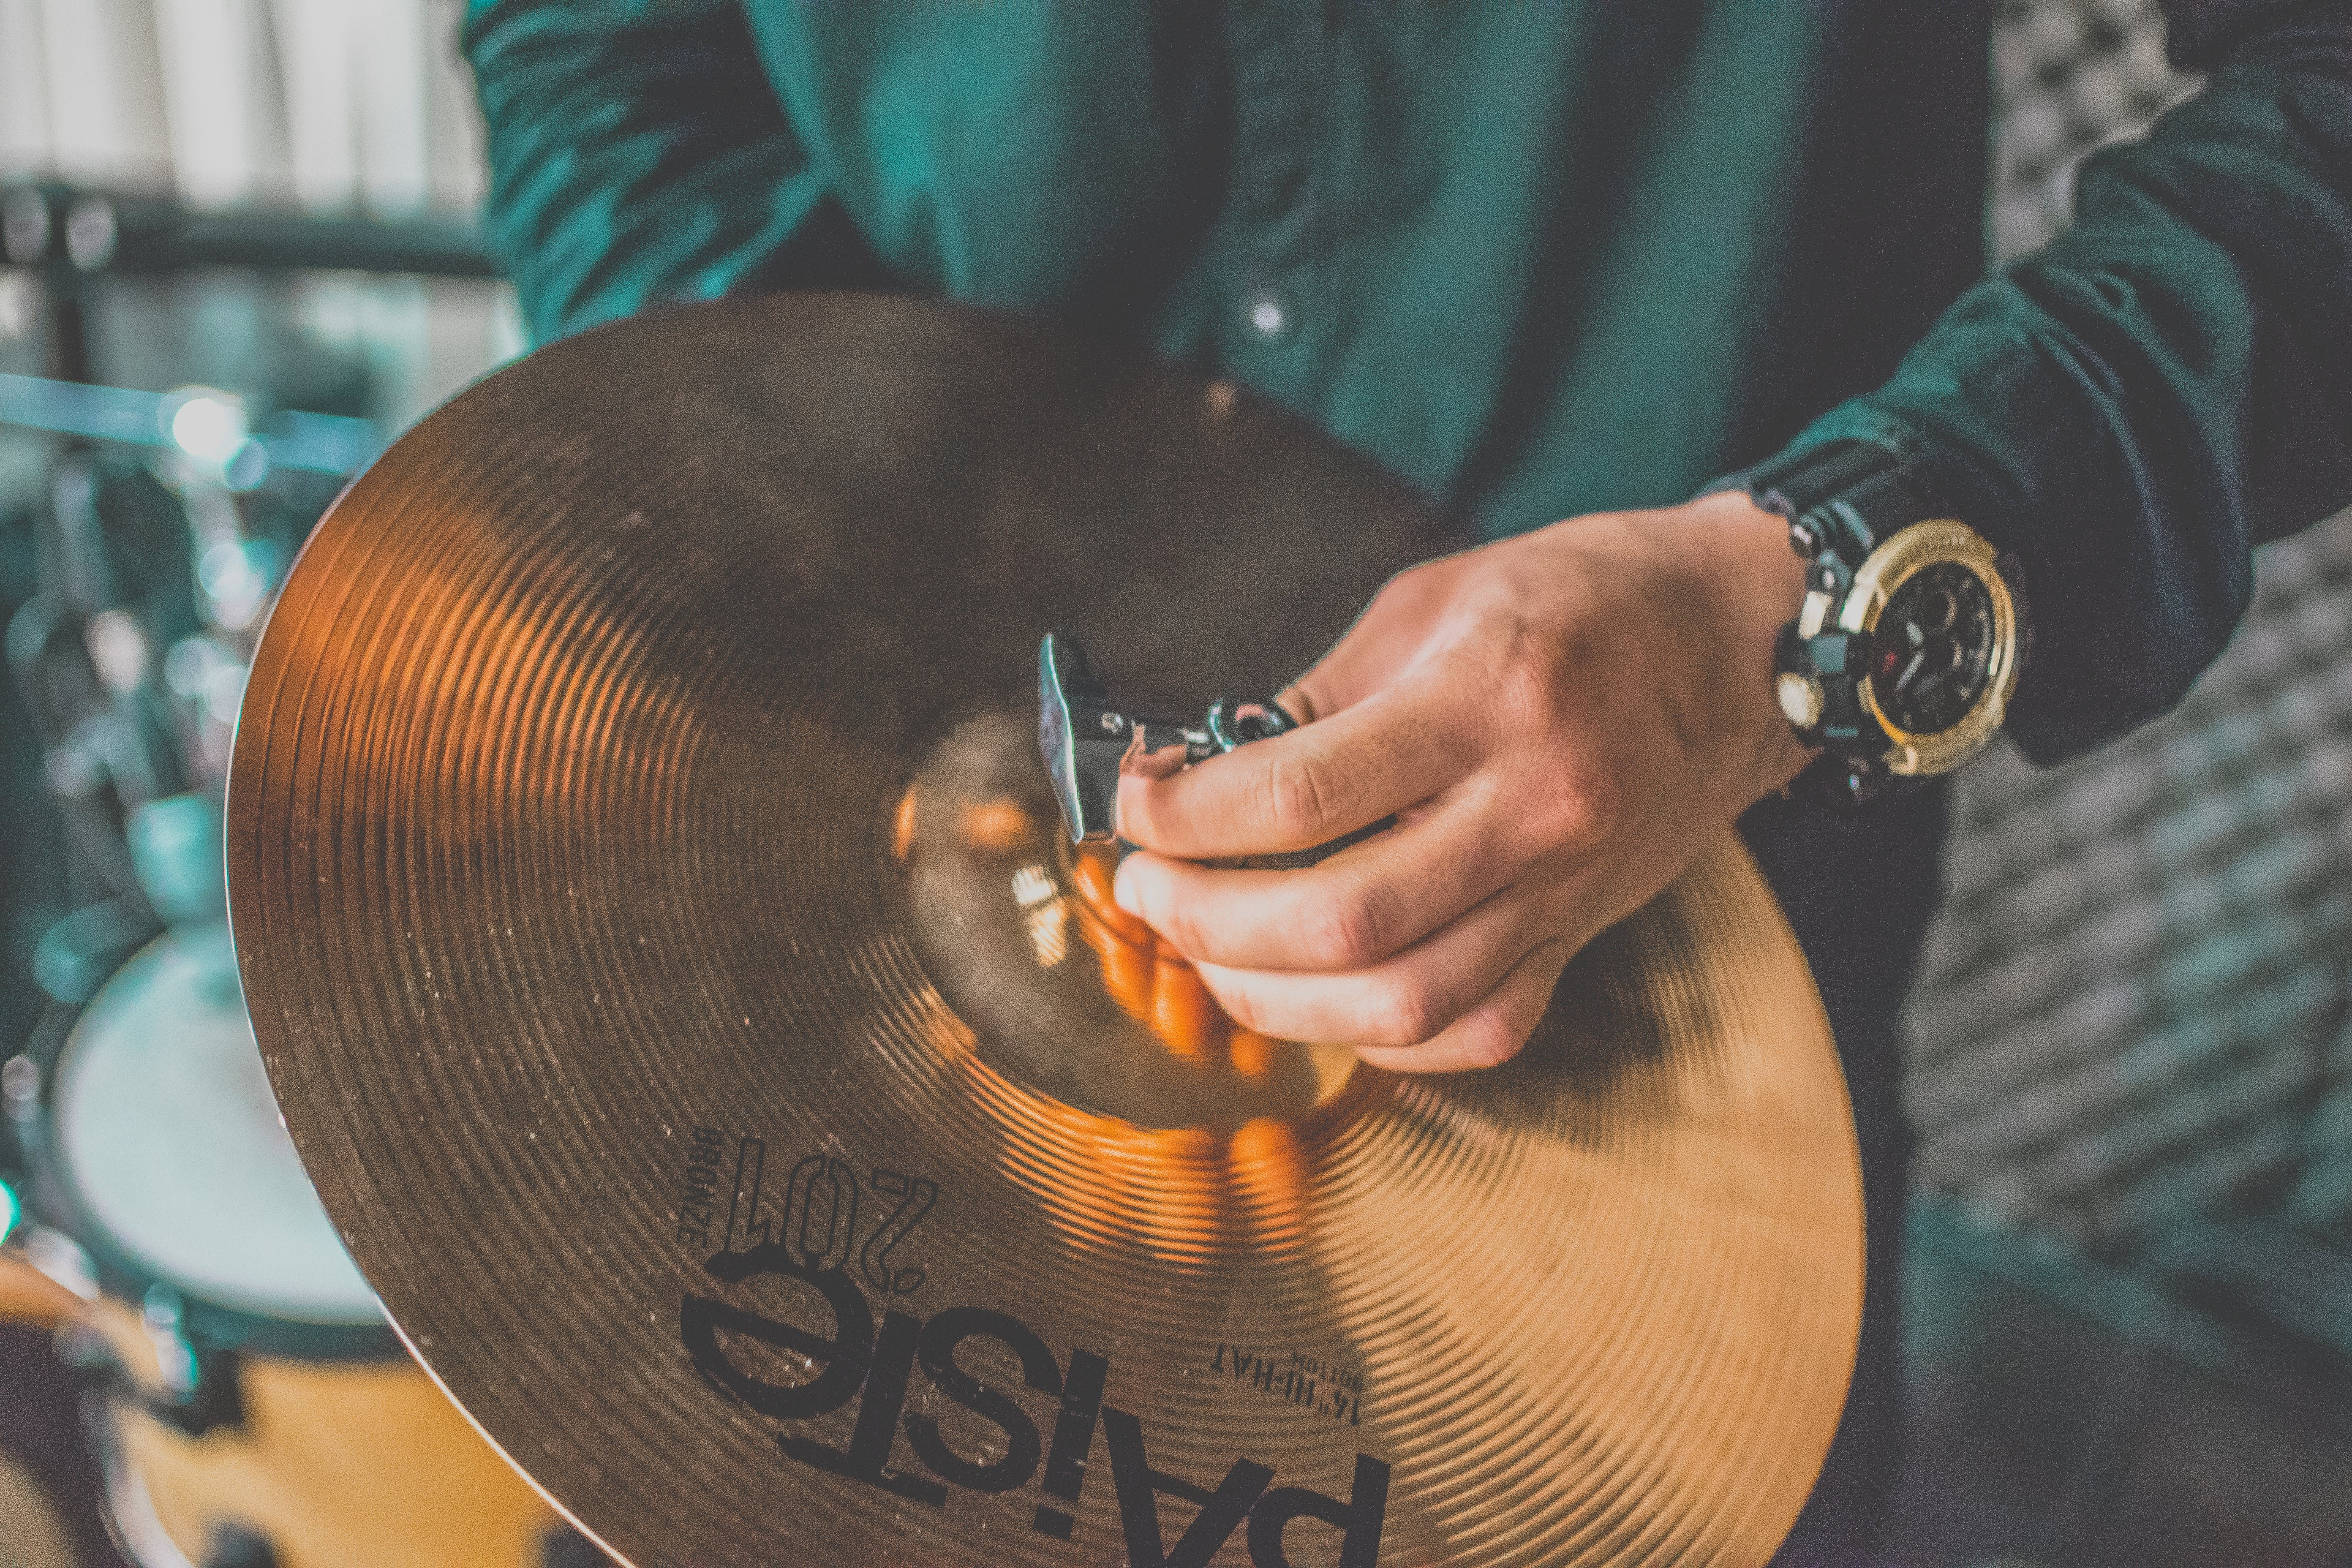 Person Holding Paiste Cymbal